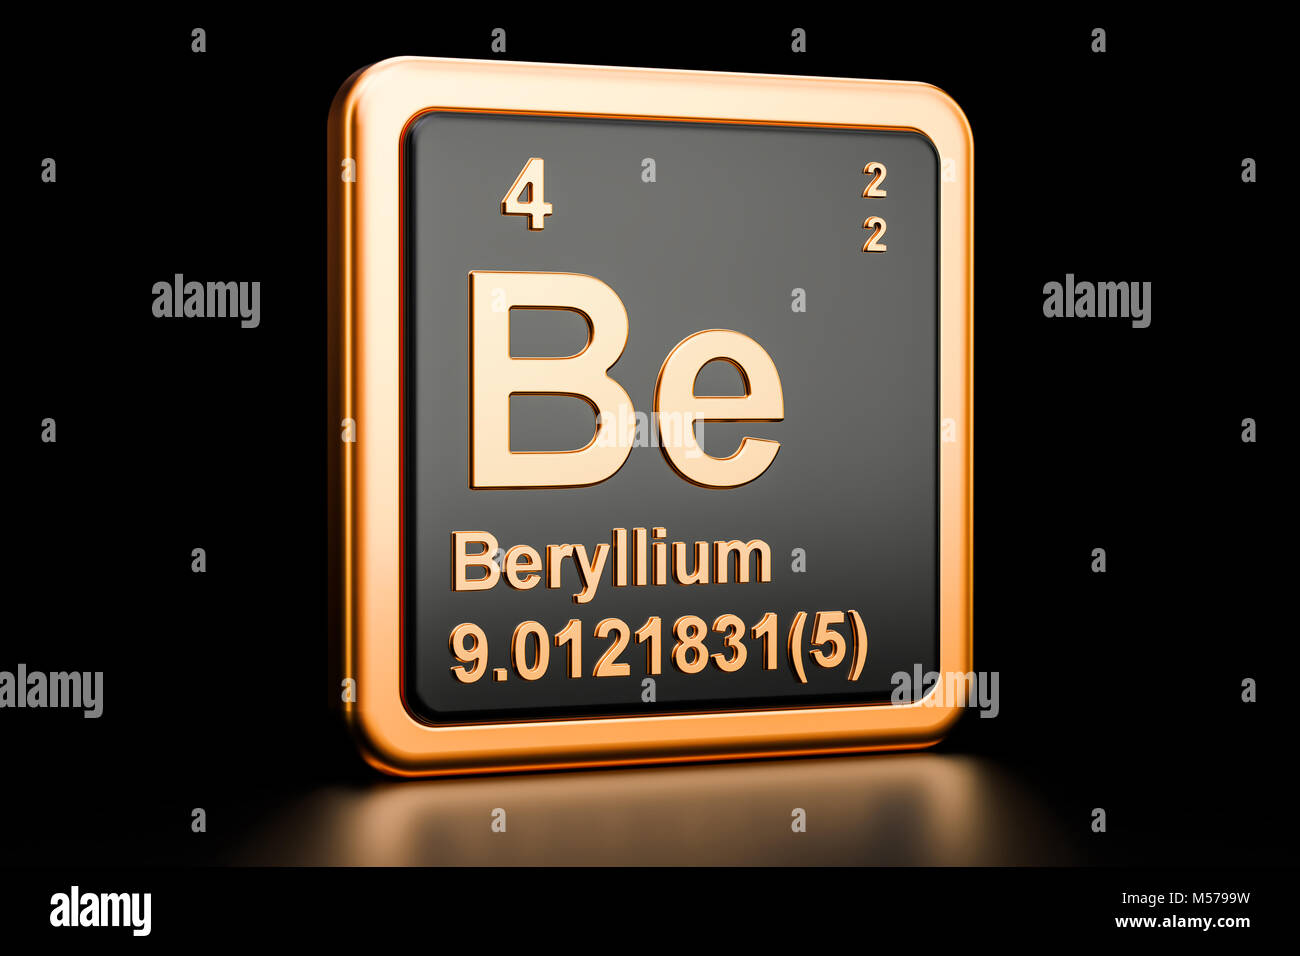 Beryllium chemical element periodic table stock photos beryllium beryllium be chemical element 3d rendering isolated on black background stock image biocorpaavc Images